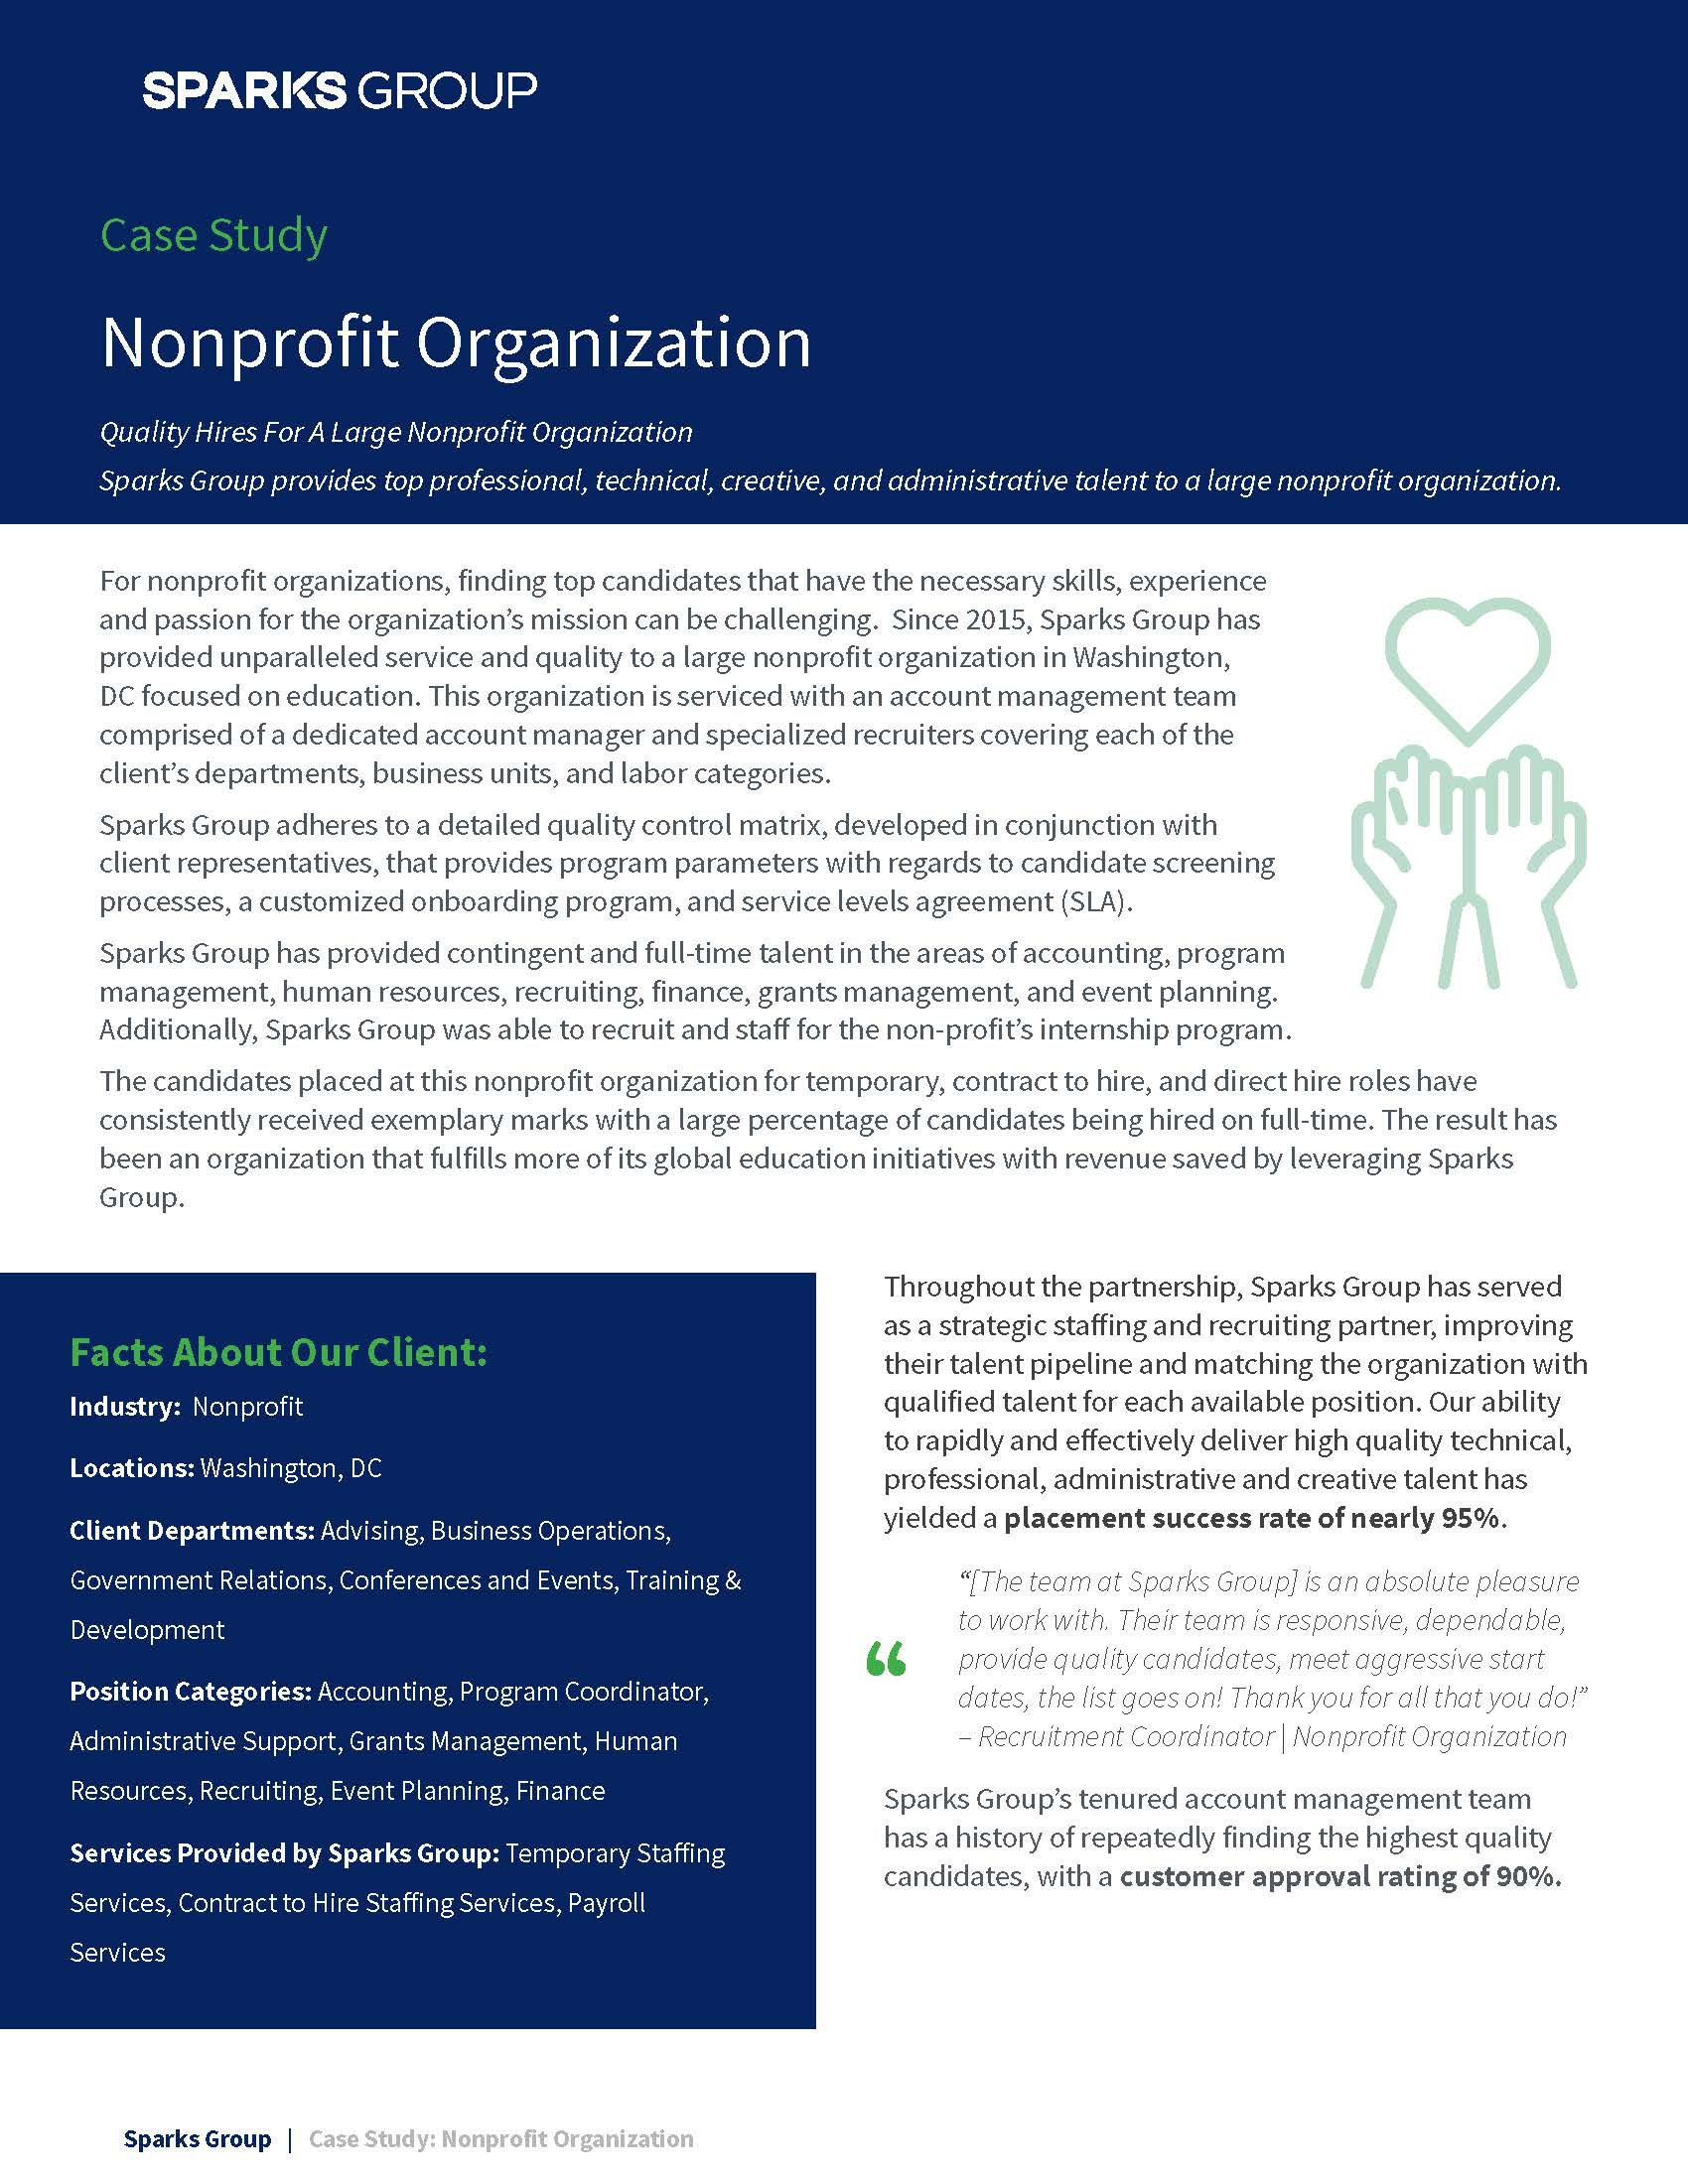 Case Study - Quality Hires For A Large Nonprofit Organization